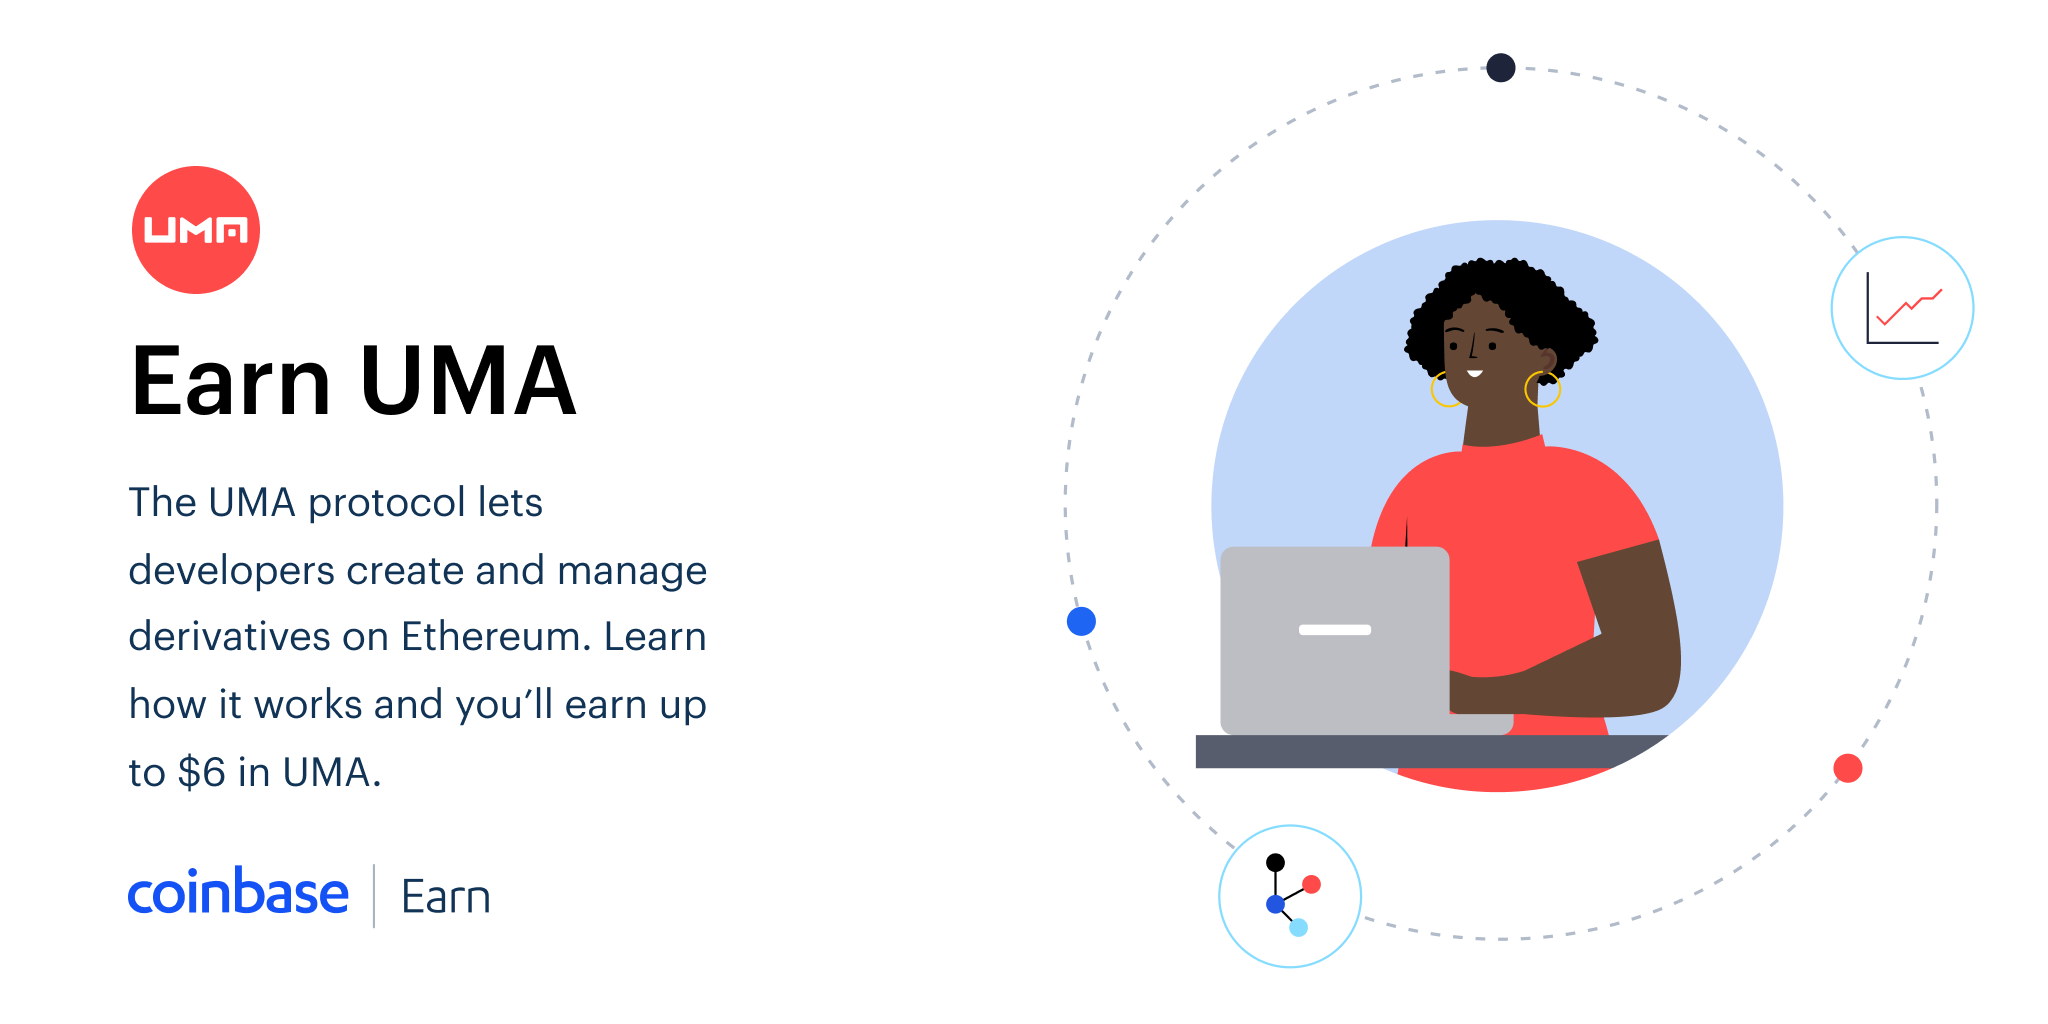 Coinbase Earn Uma Reviews – Read To Check New Features